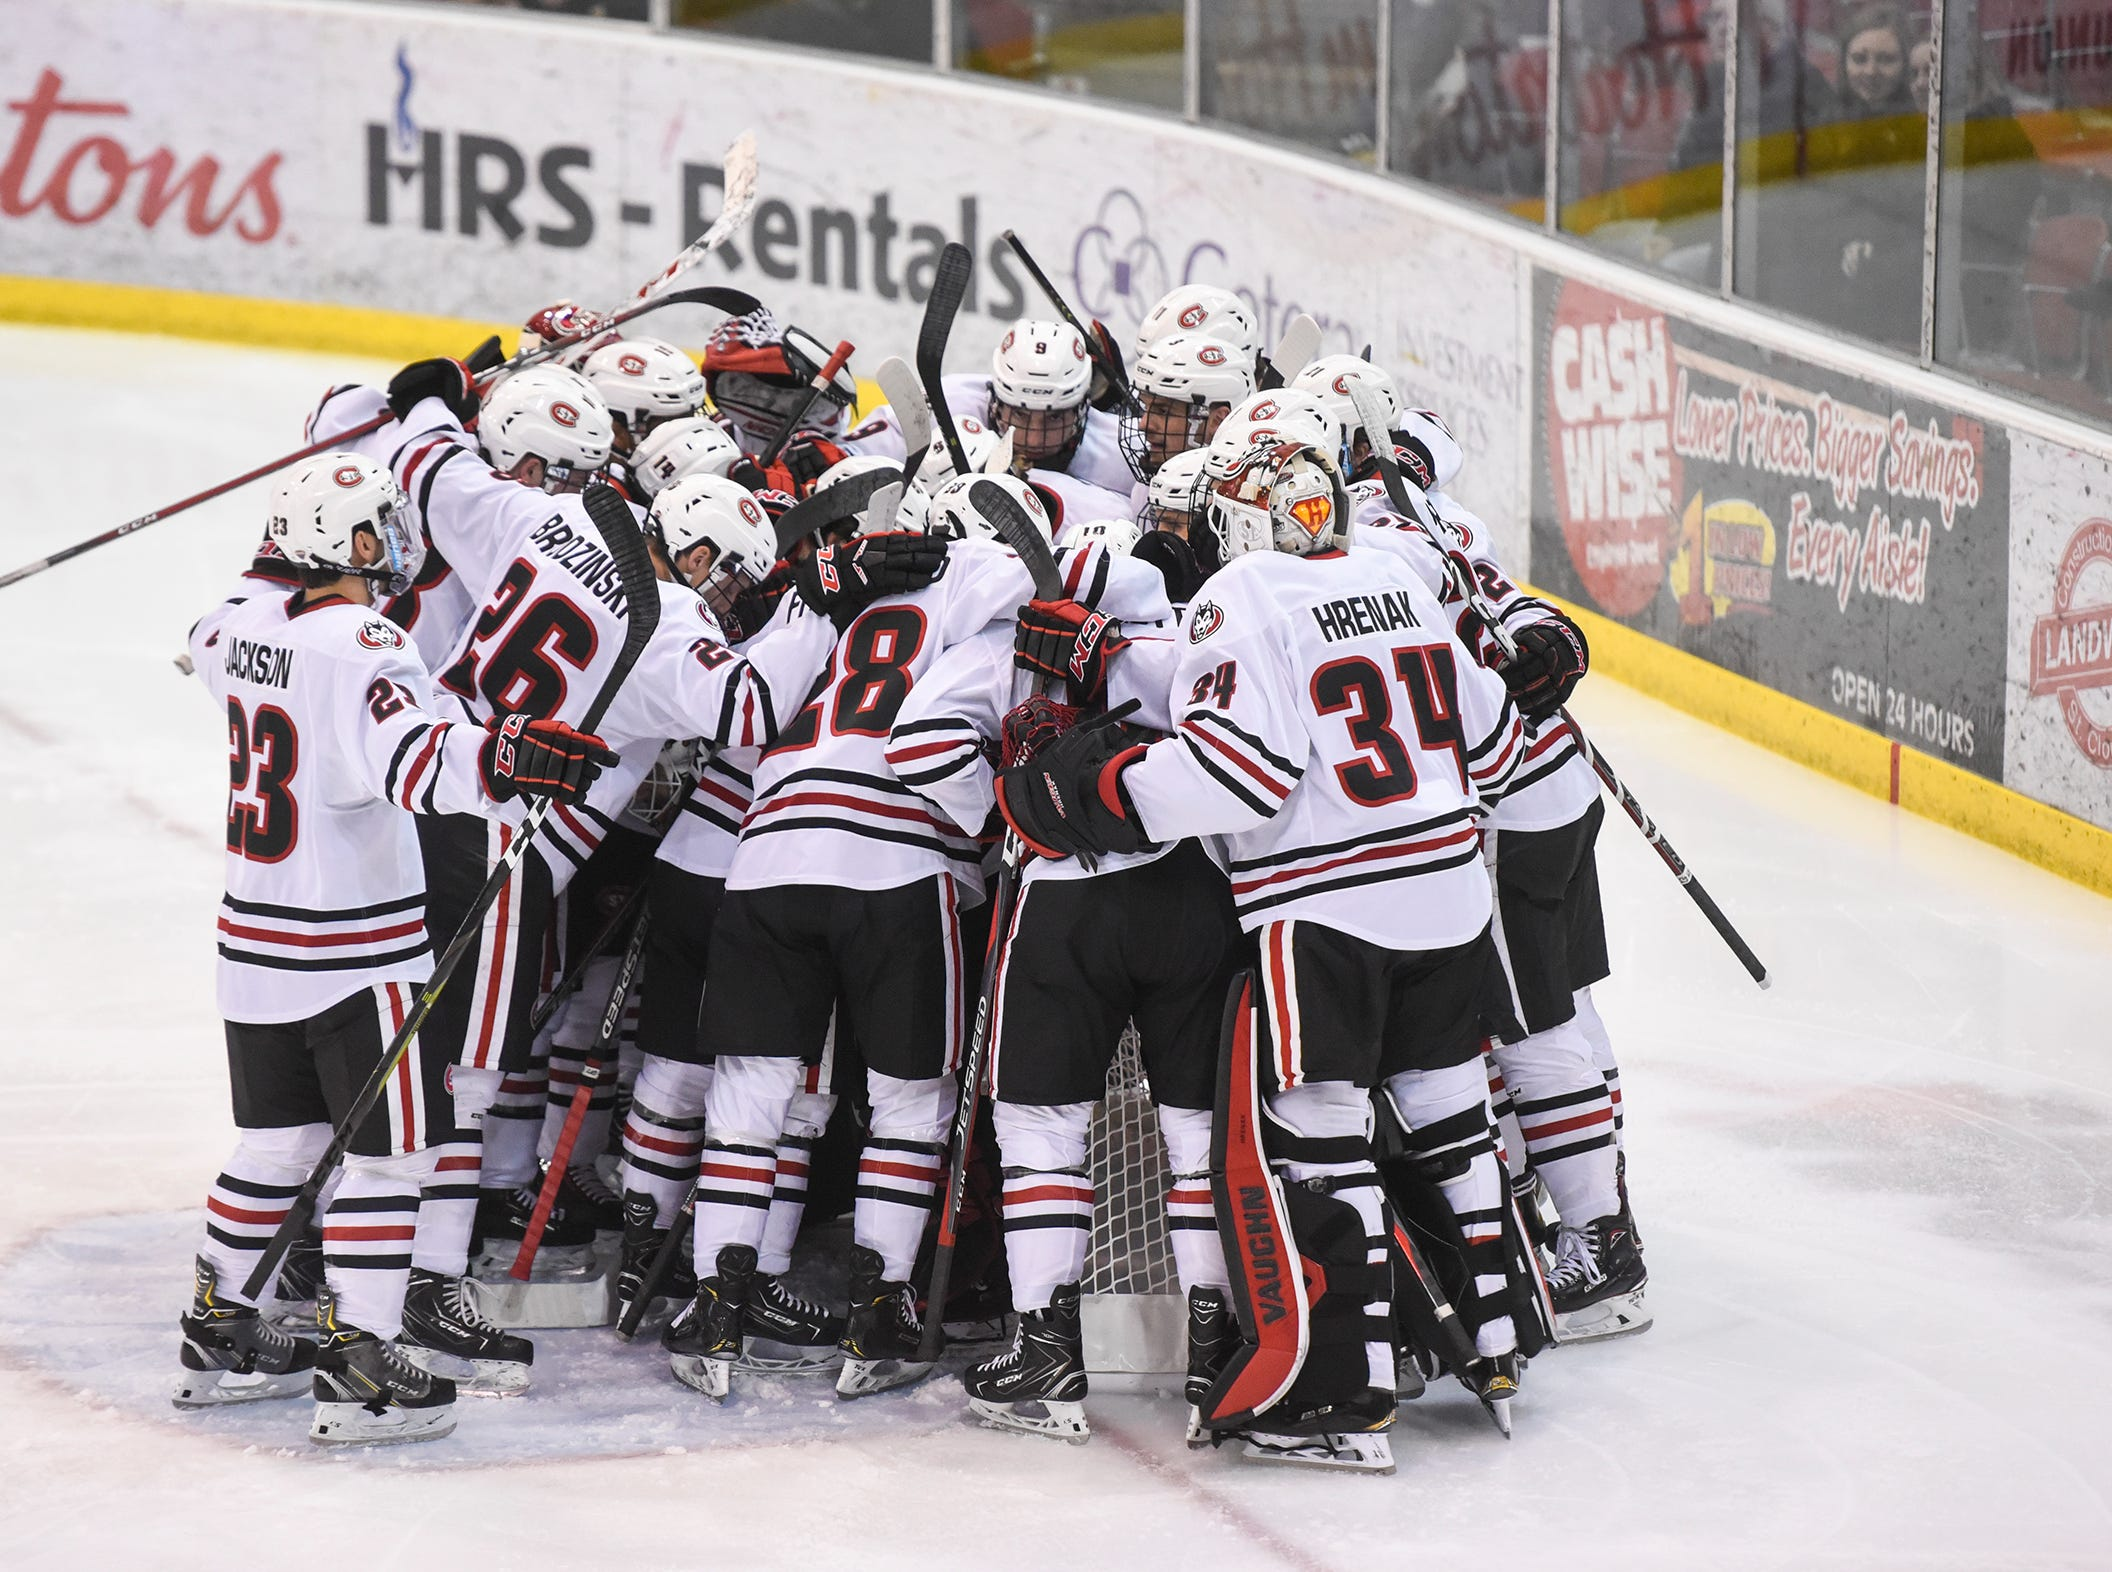 St. Cloud State players gather around their goal before the start of the Friday, Nov. 16, game against Bemidji State at the Herb Brooks National Hockey Center in St. Cloud.